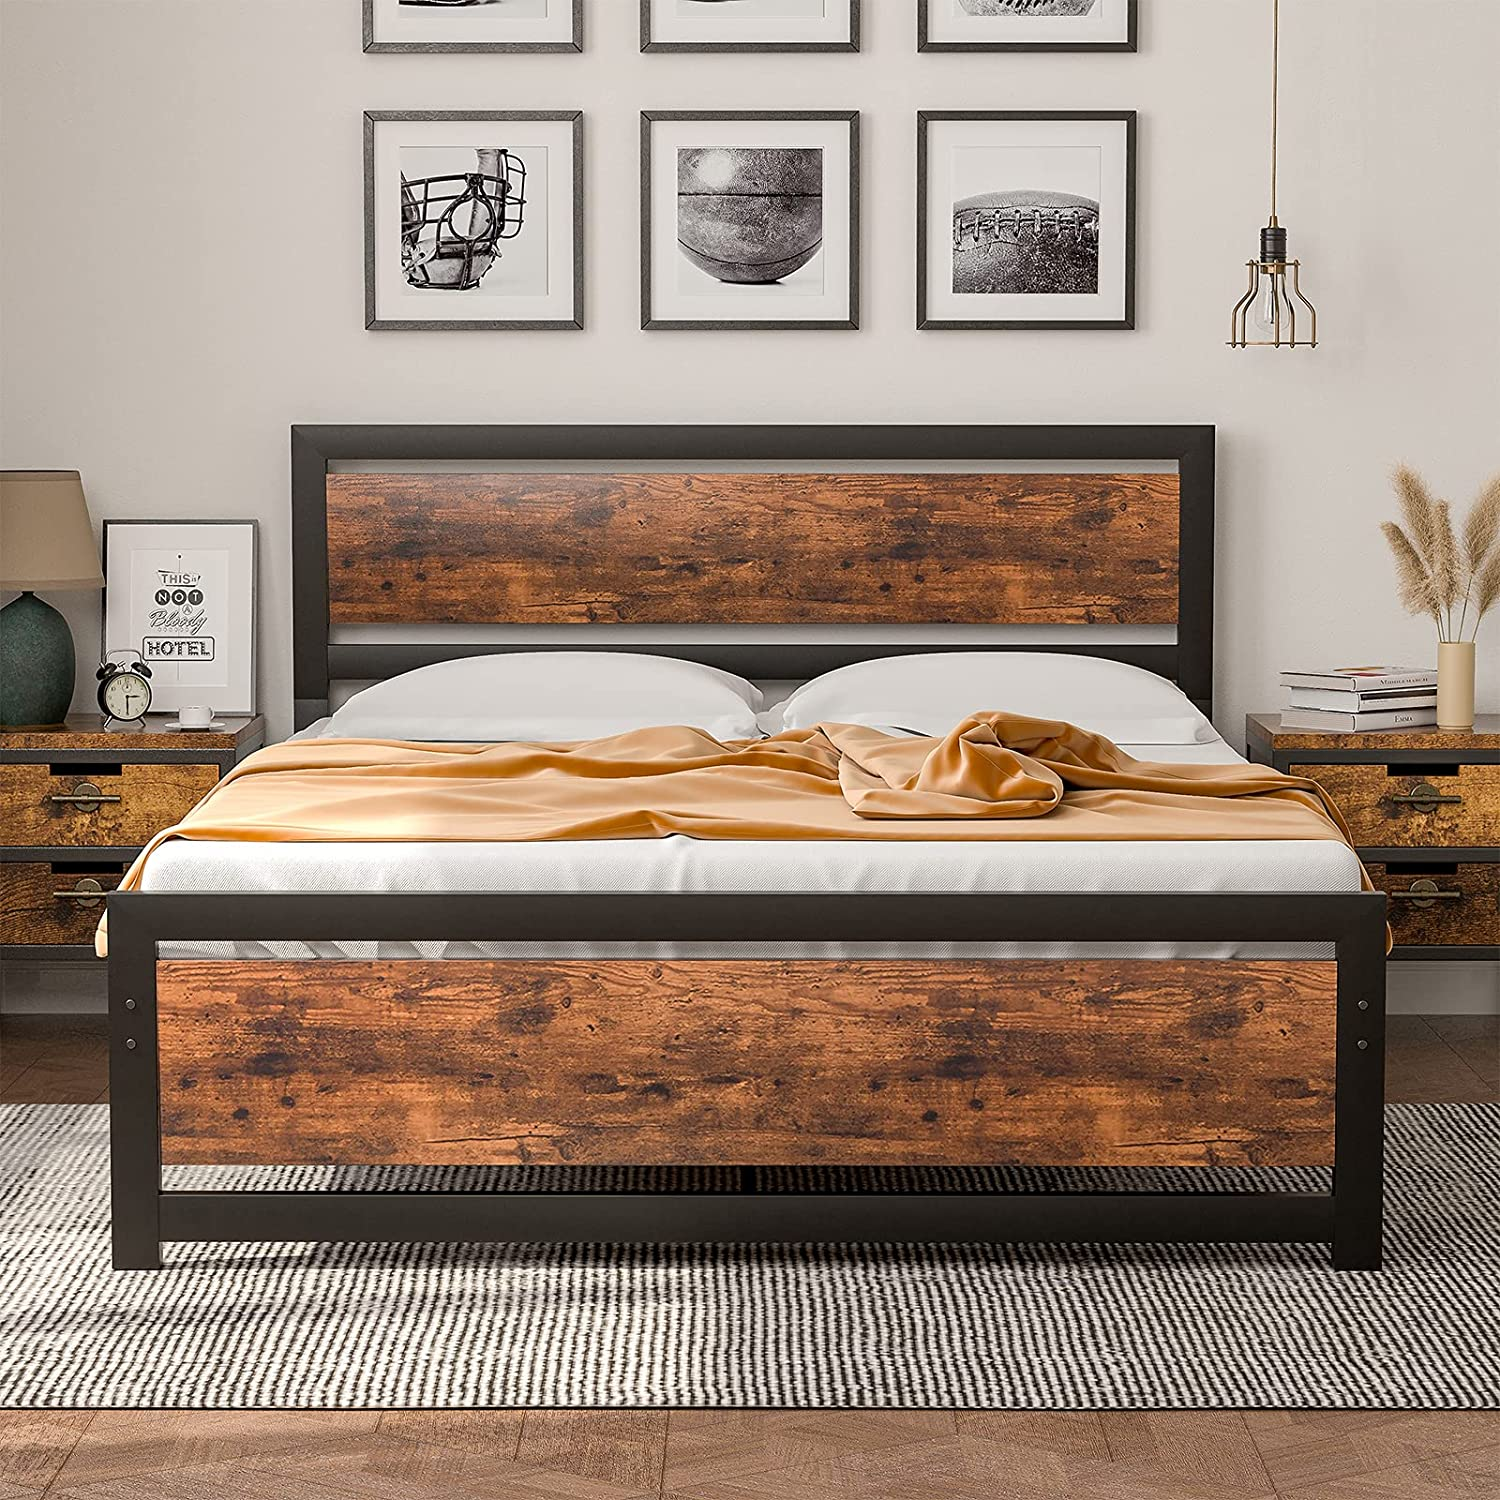 Queen Surprise price Bed Frame with Wooden Headboard Platfo Heavy Duty Directly managed store Rustic